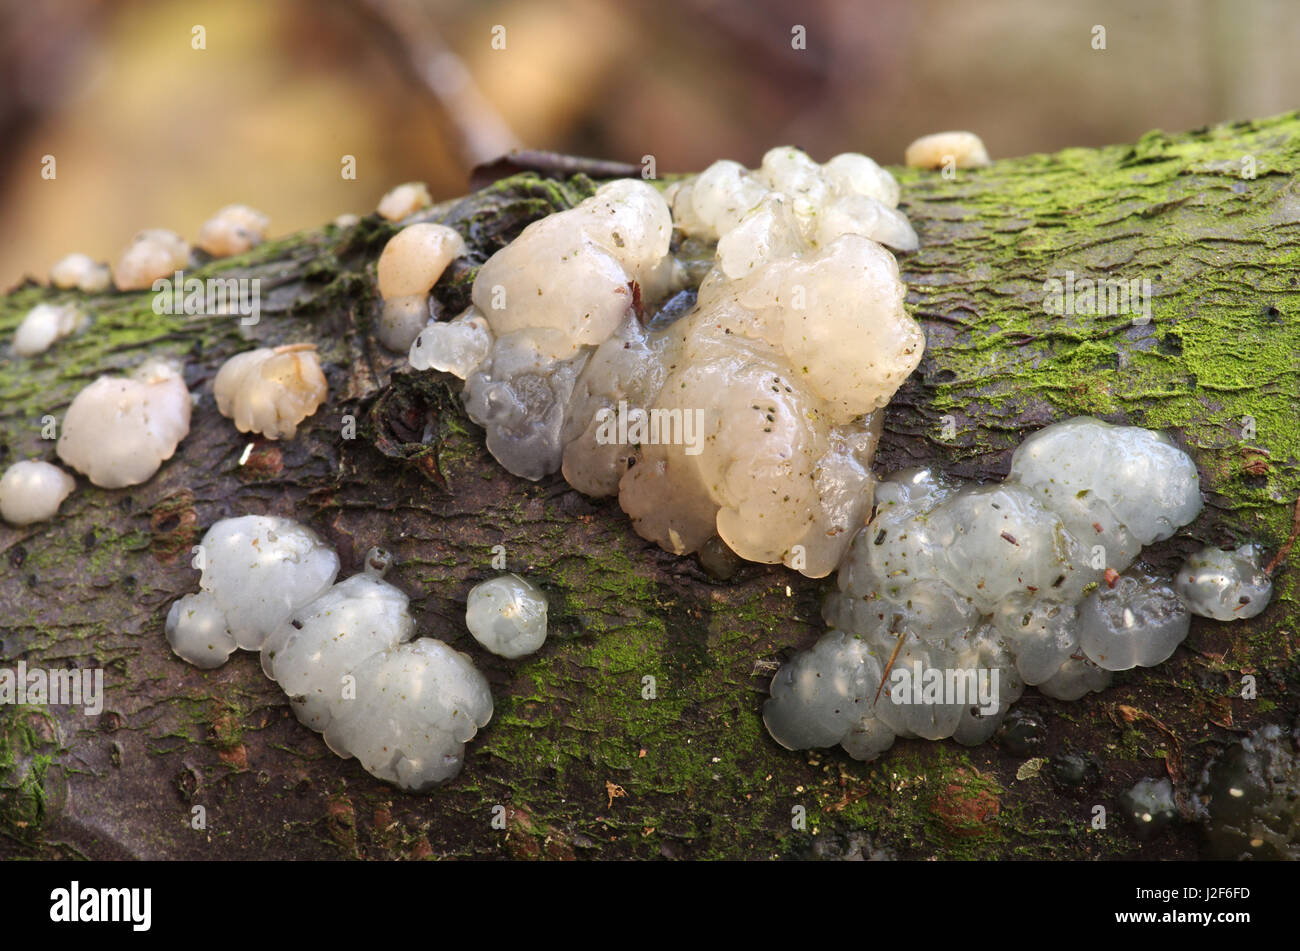 White Brain on a branch - Stock Image